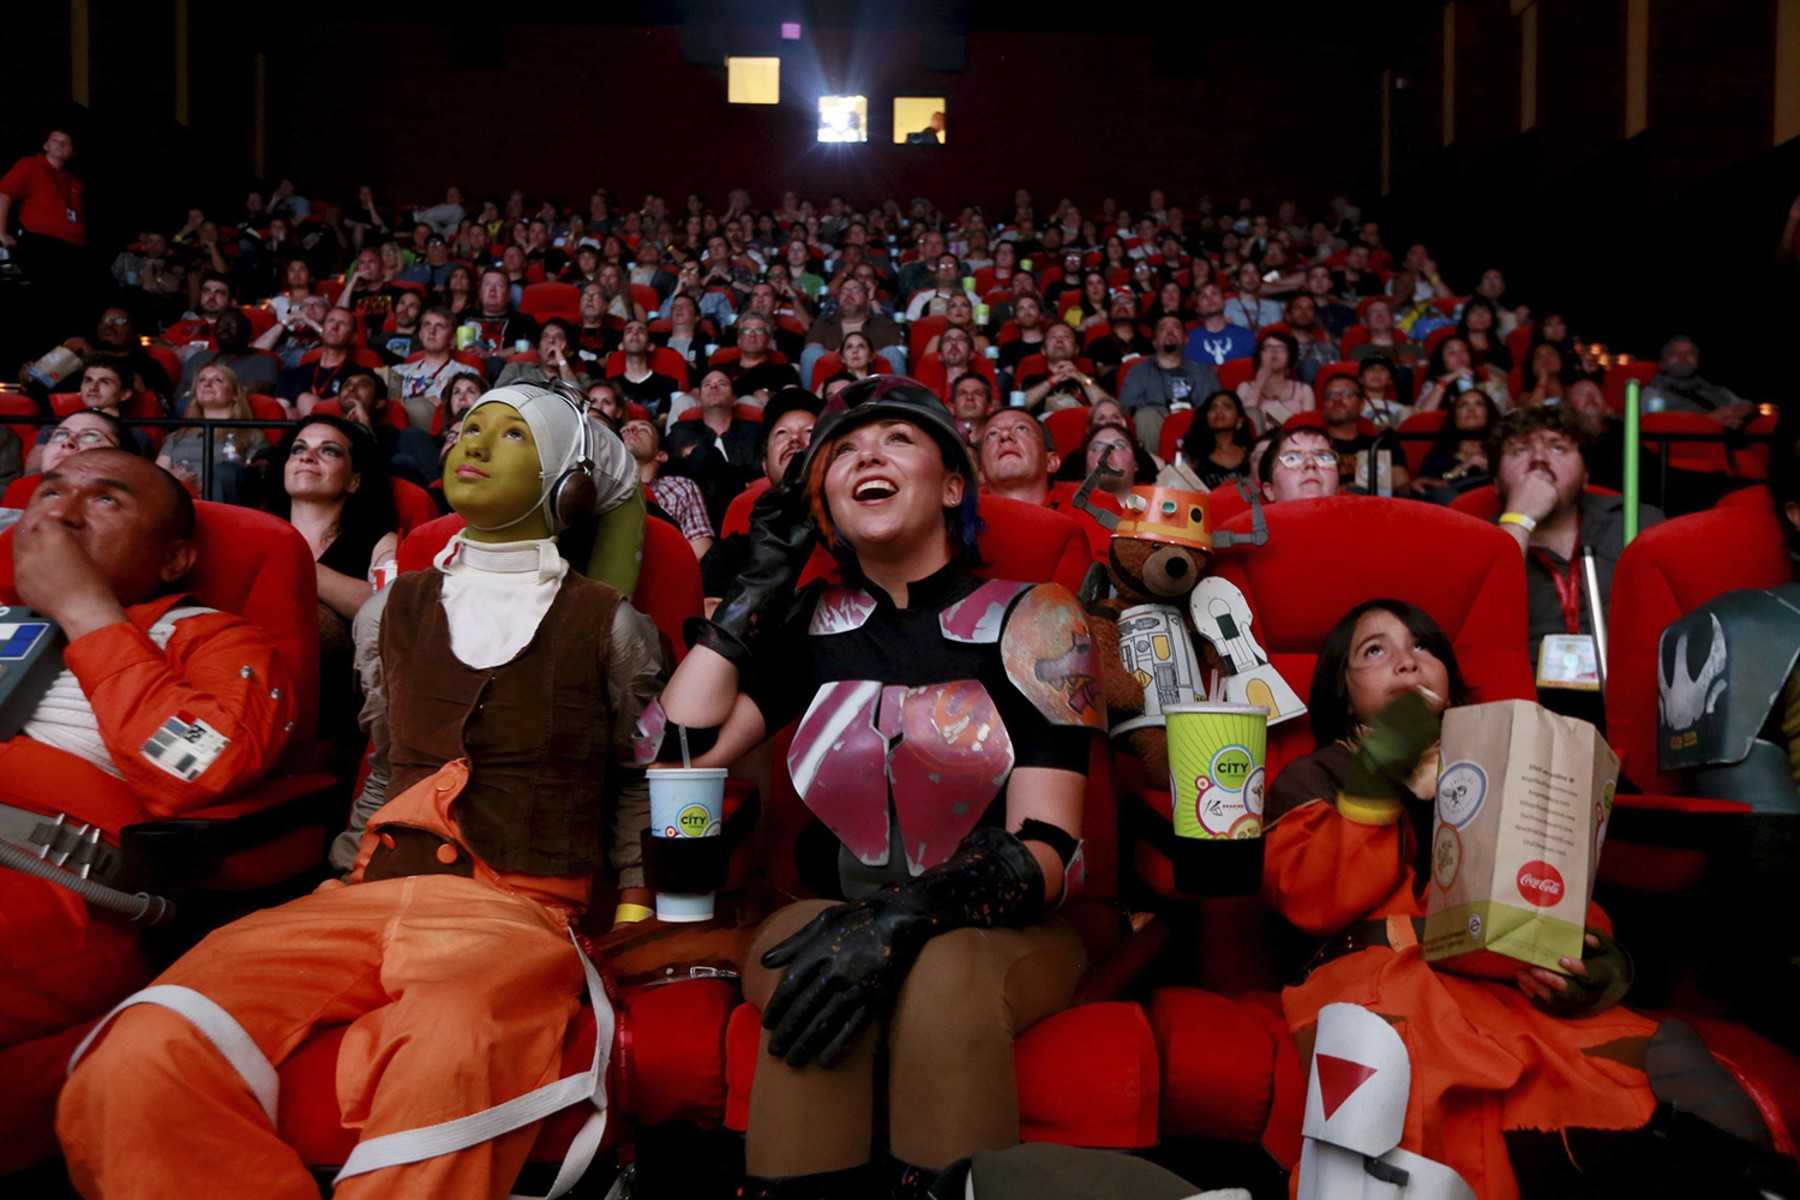 Image: Costumed attendees cheer as they meet the cast of Star Wars Legends during an advanced screening during the 2014 Comic-Con International Convention in San Diego, California